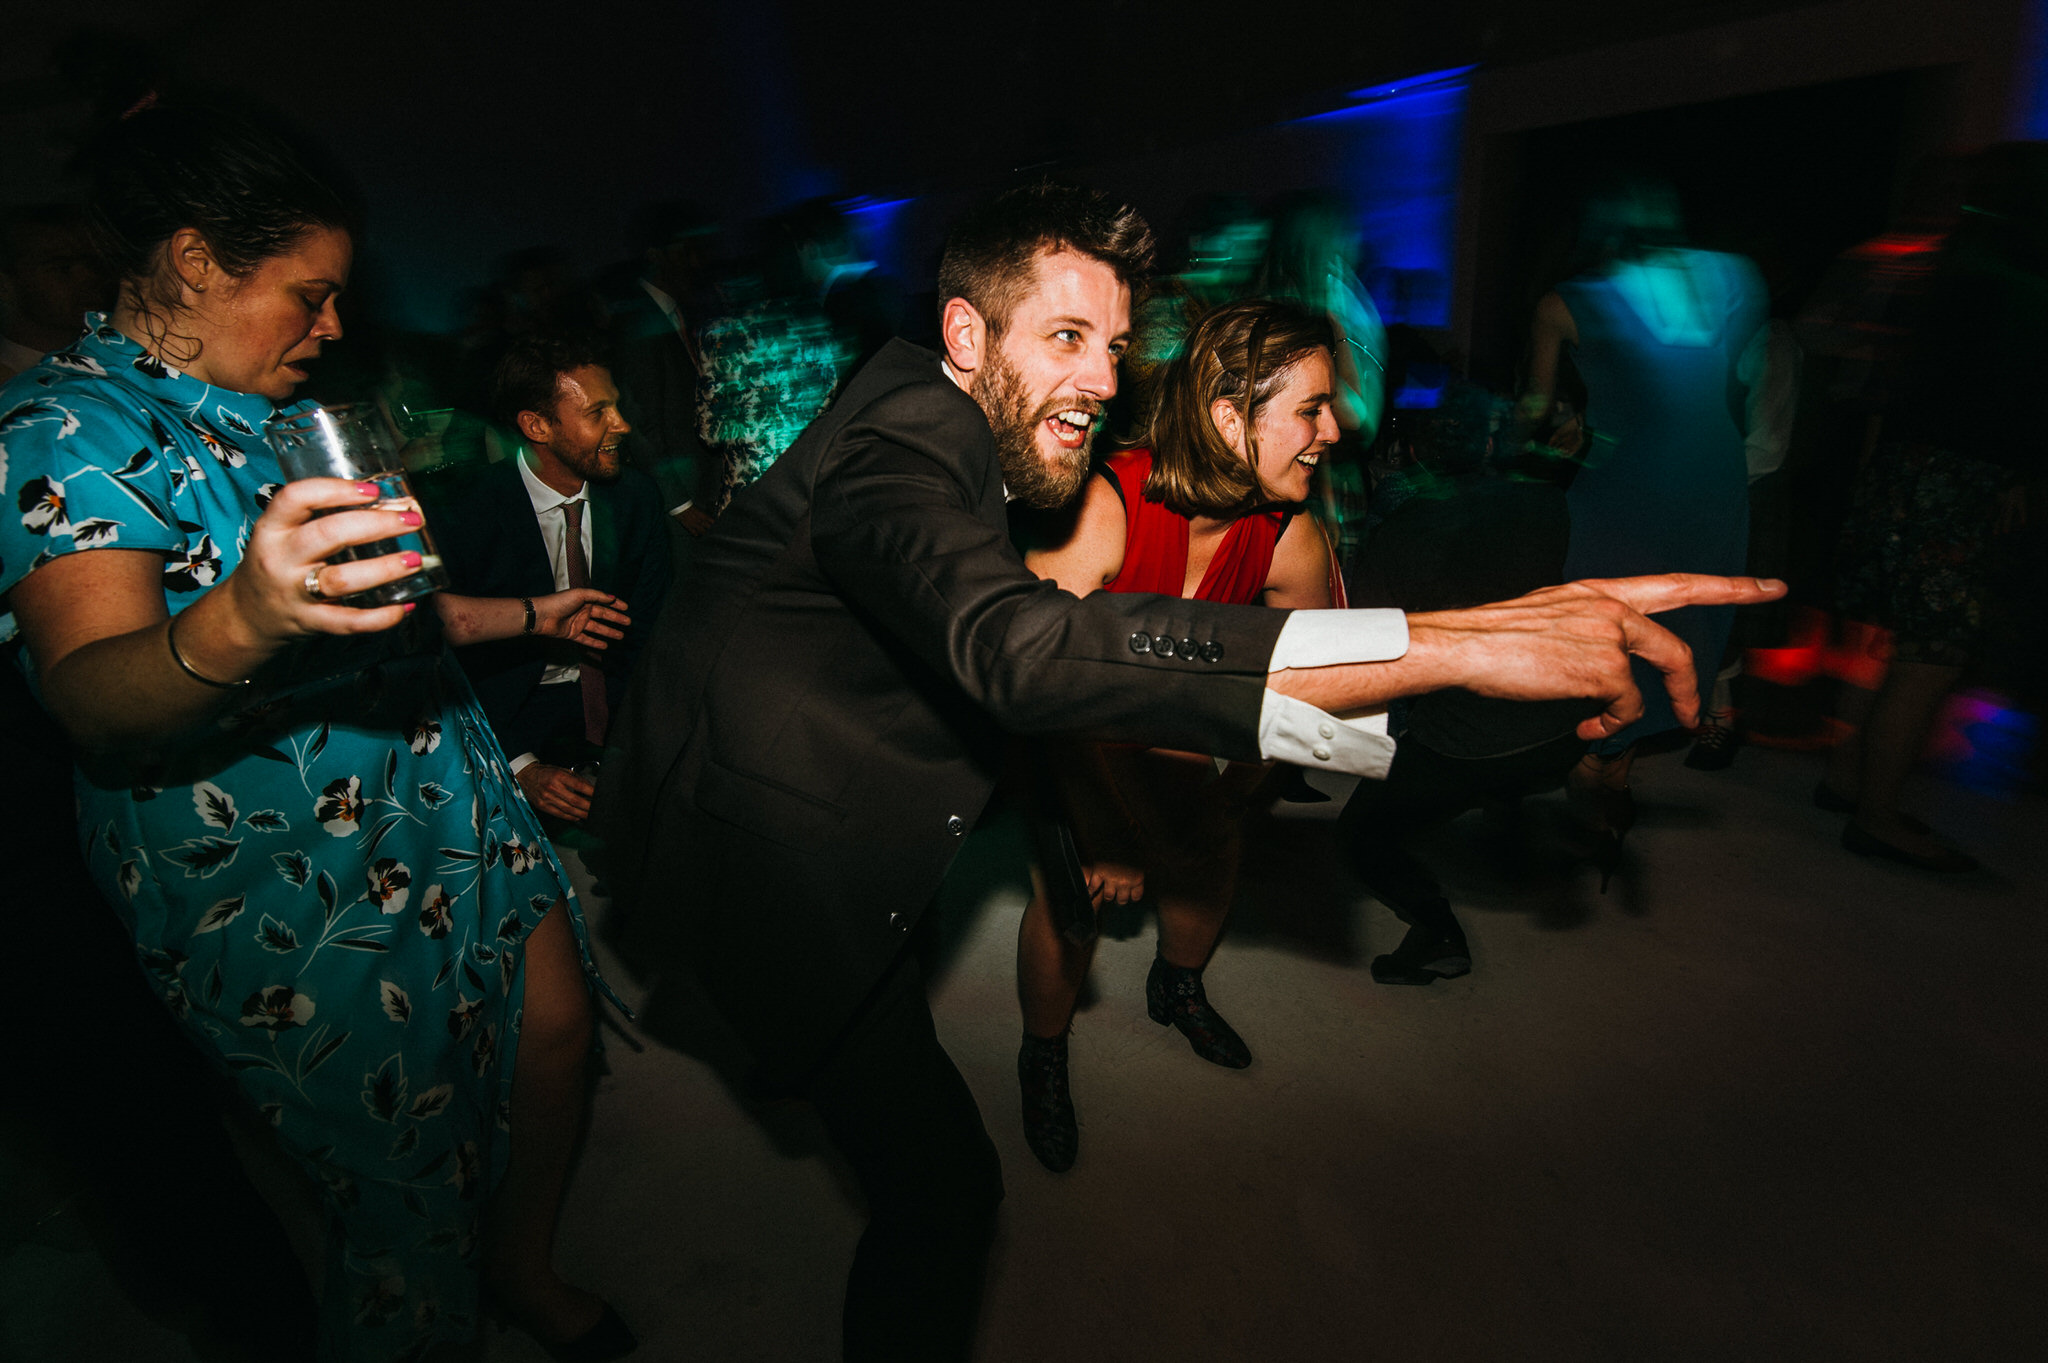 Dance floor Sunbeam wedding photographer